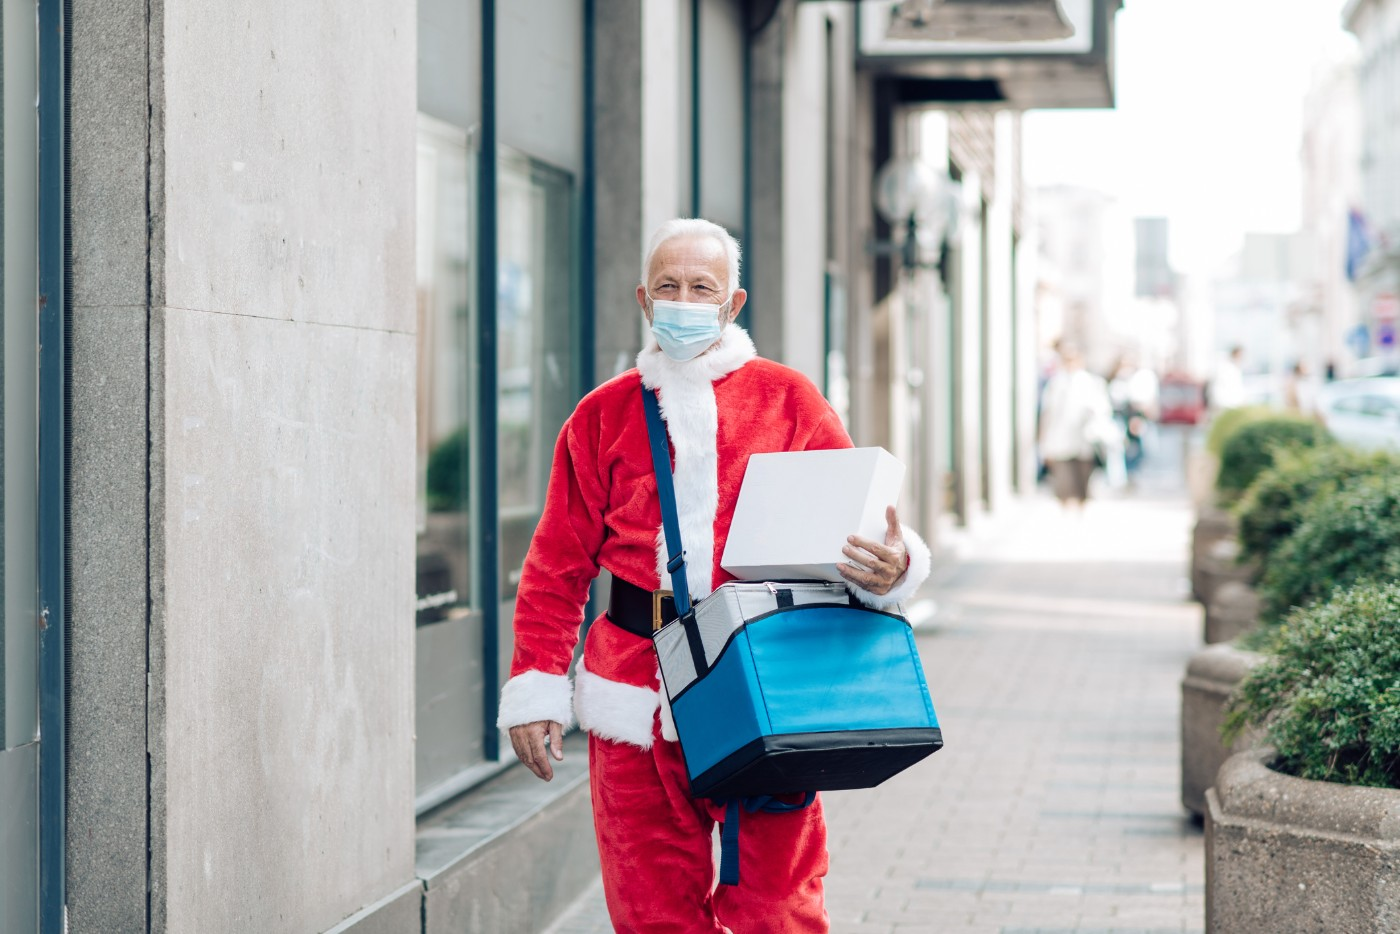 https://tickertapecdn.tdameritrade.com/assets/images/pages/md/Masked Santa: Retailers and Holiday Spending 2020